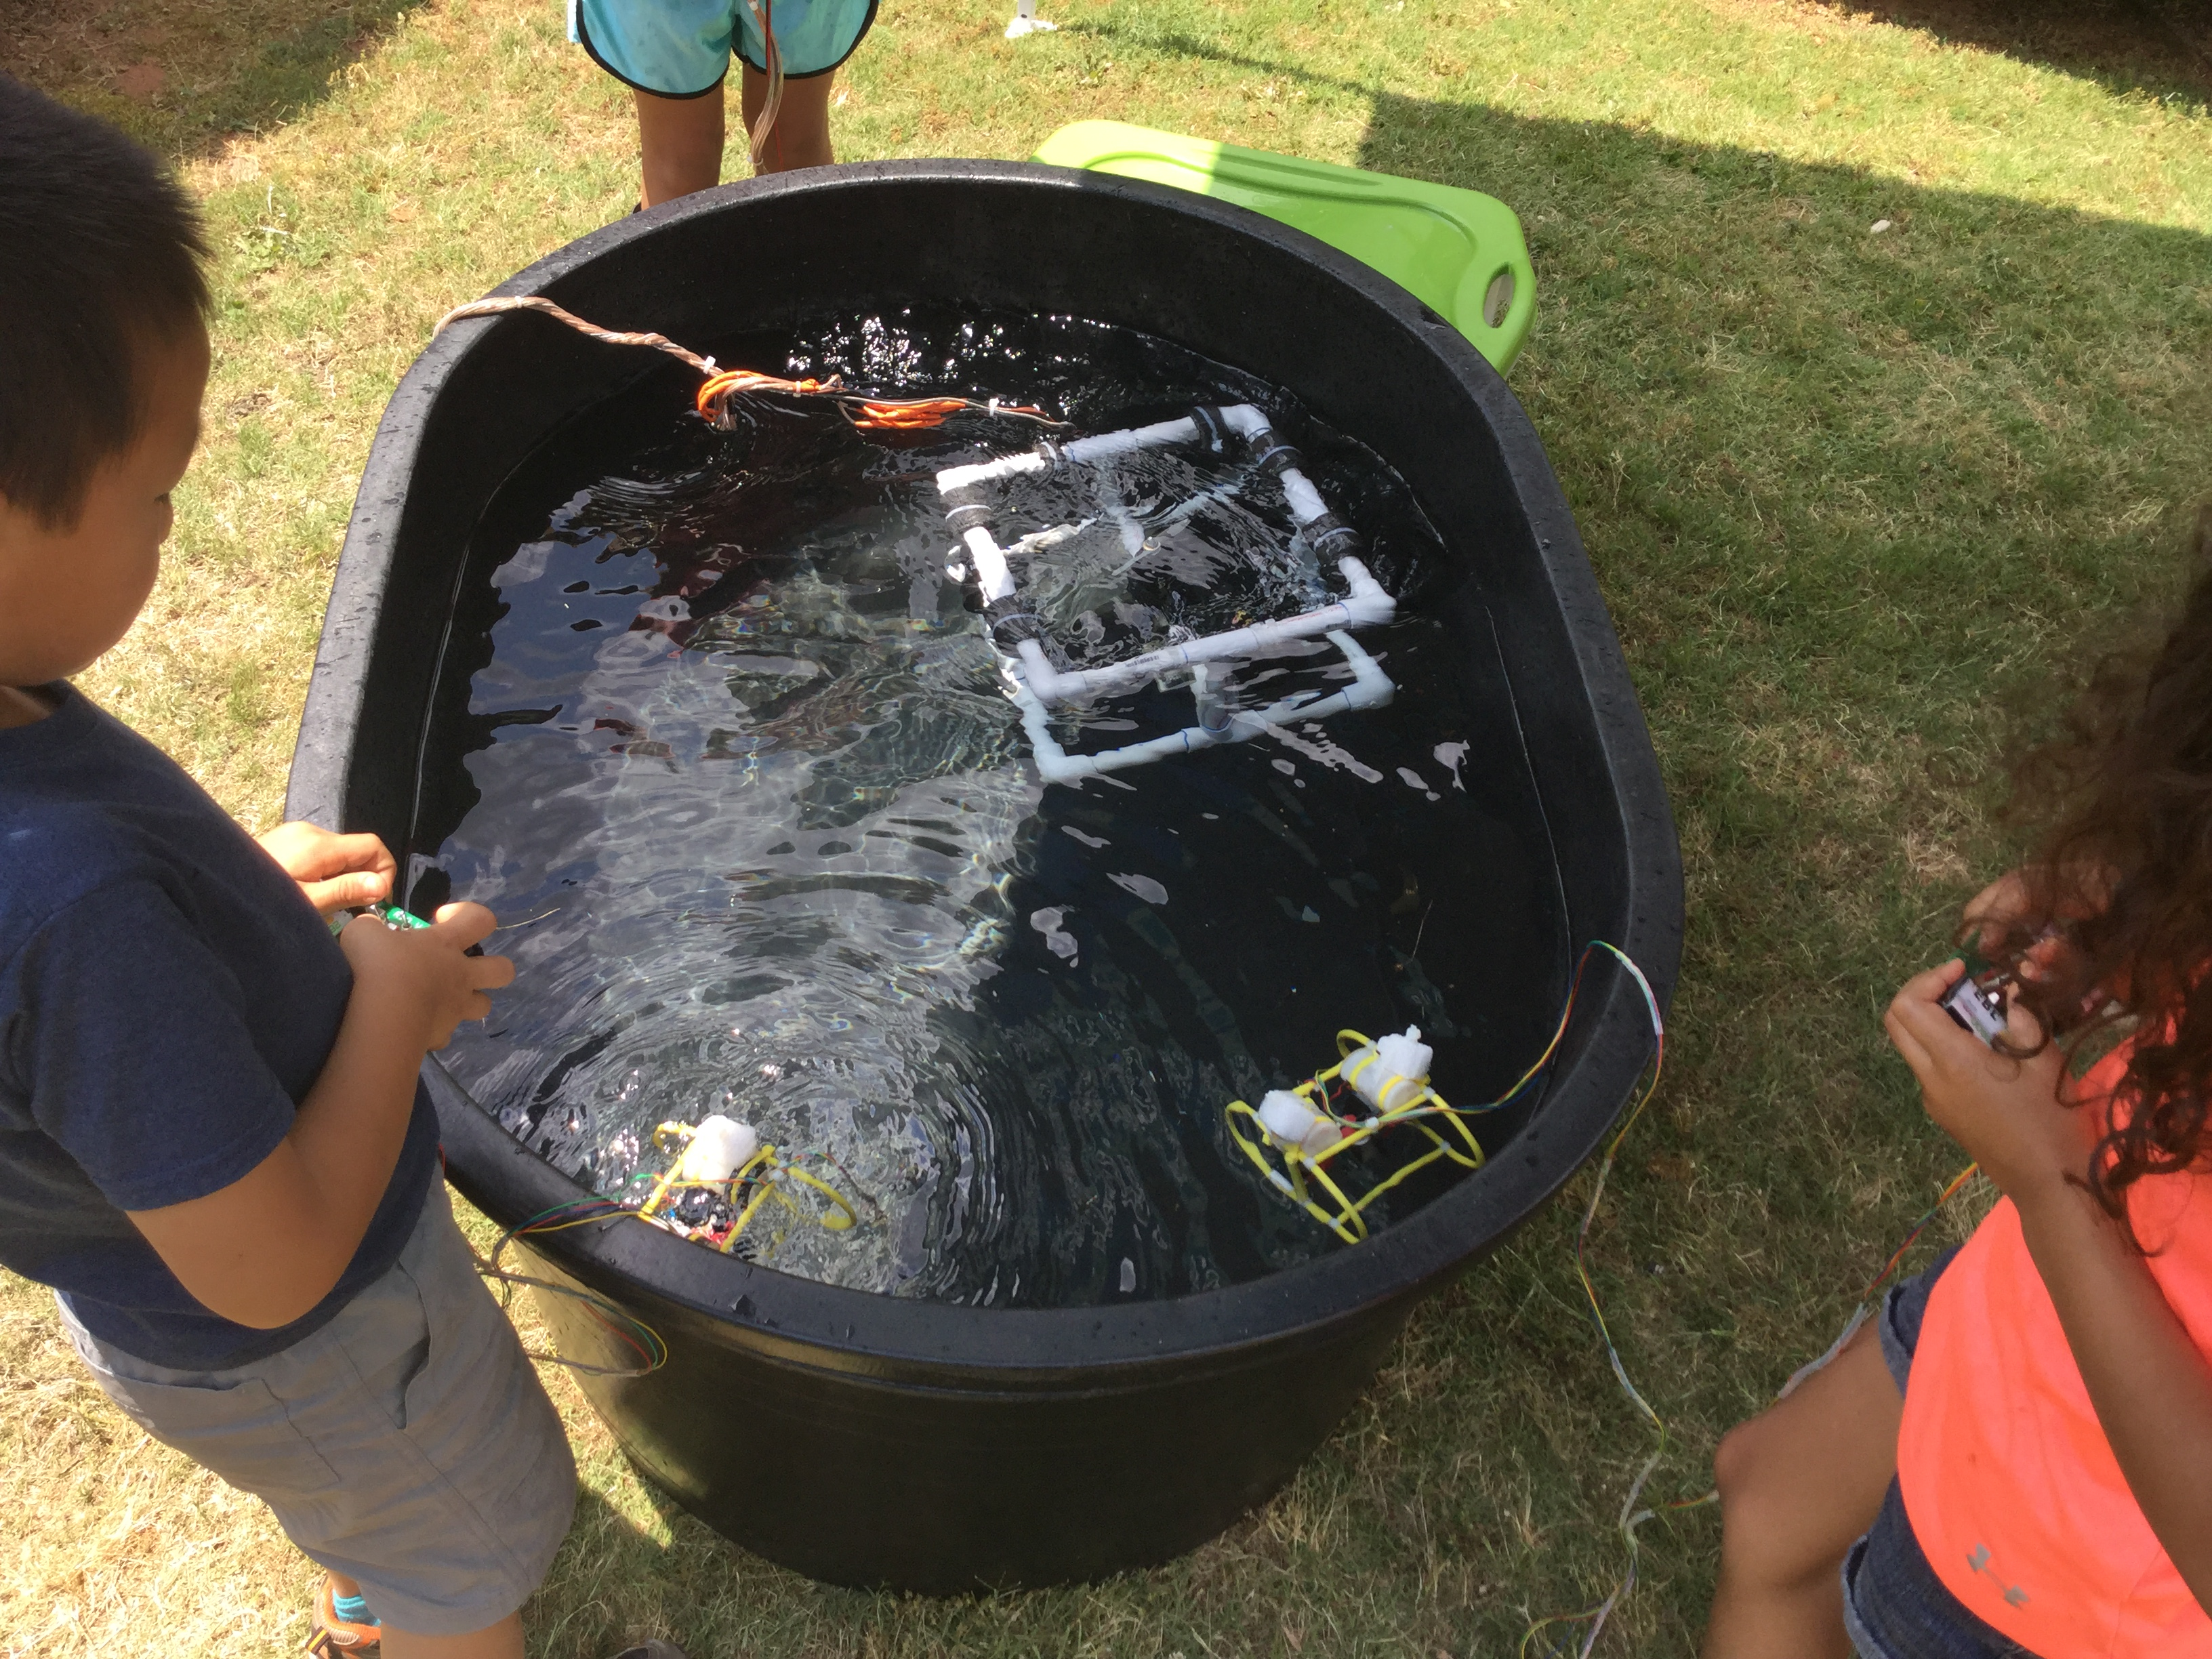 <div style='color:#000000;'><br /><br /><h2>Oconee Primary kids driving the model ROVs (Remotely Operated Vehicles) that we use for demonstration.</h2>(c) ECOGIG</div>